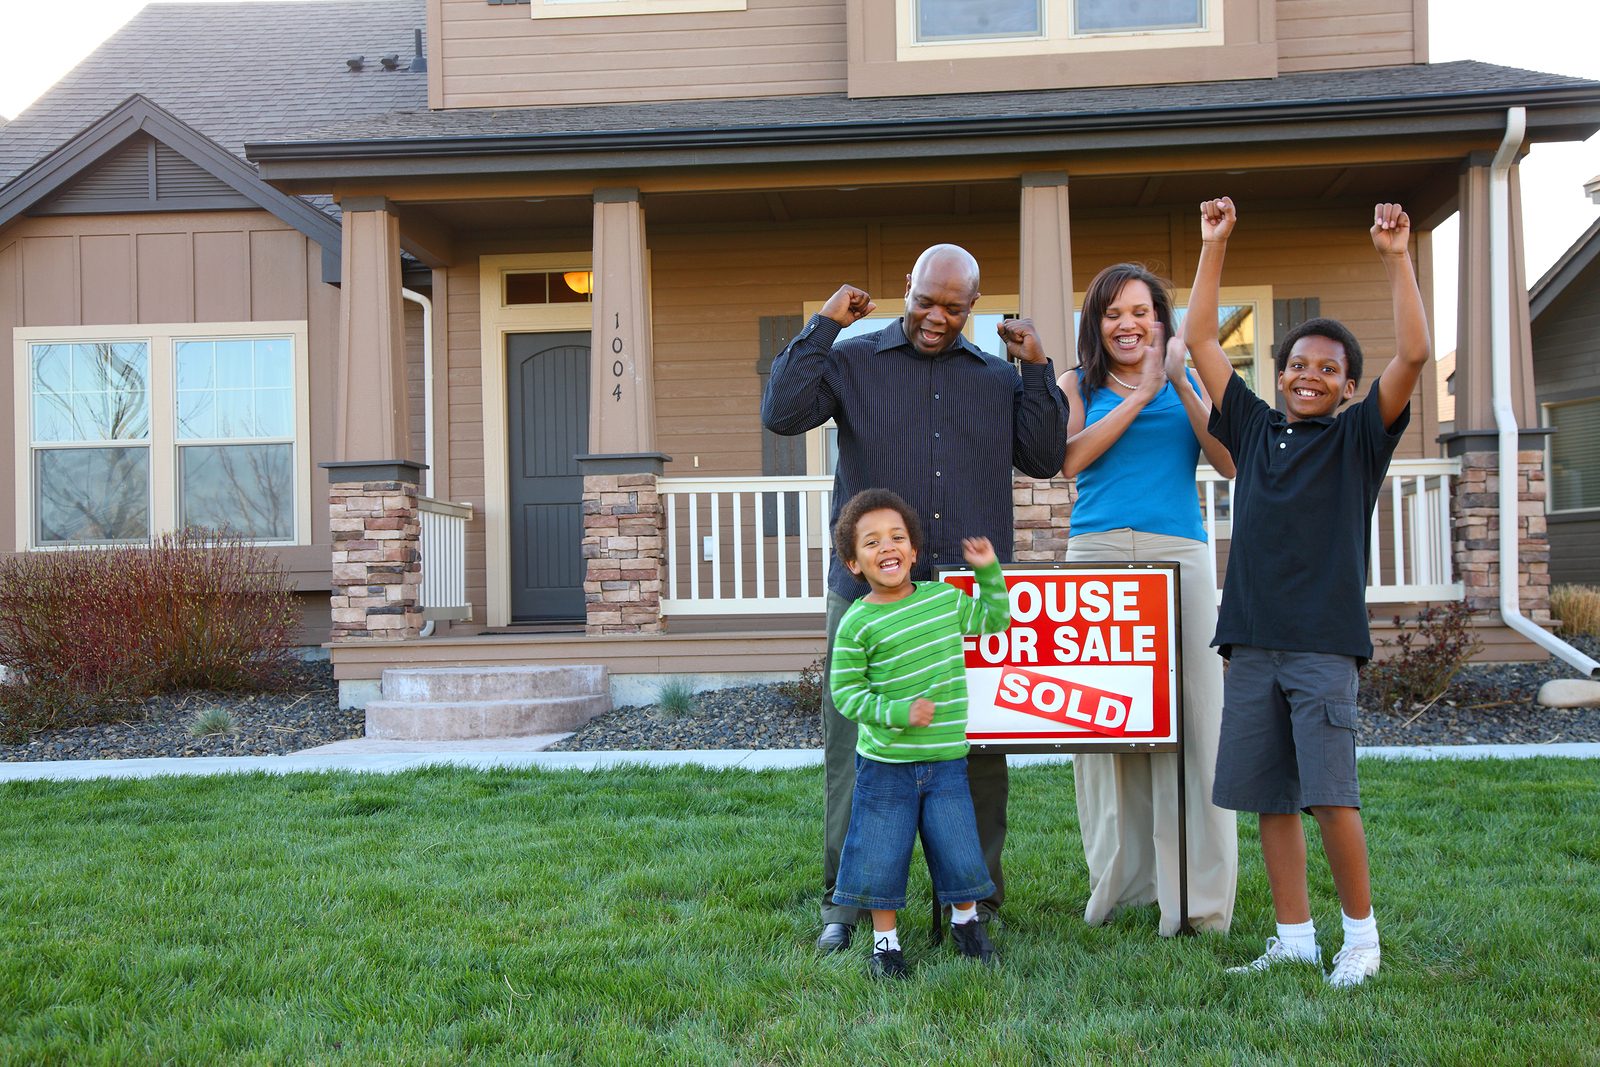 How To Purchase A New Home With Bad Credit